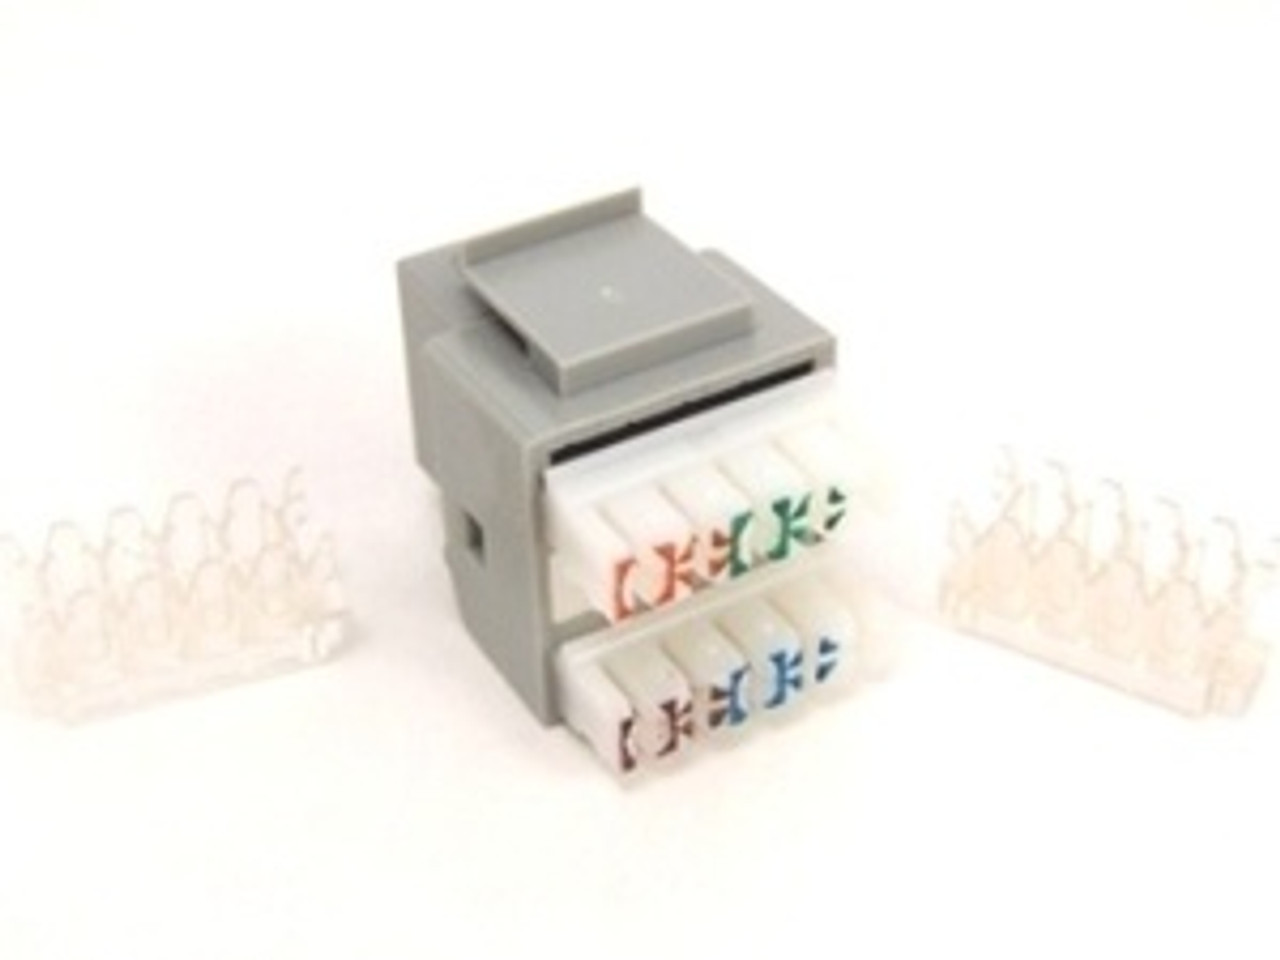 Keystone Jack RJ45 Category 5 - Gray